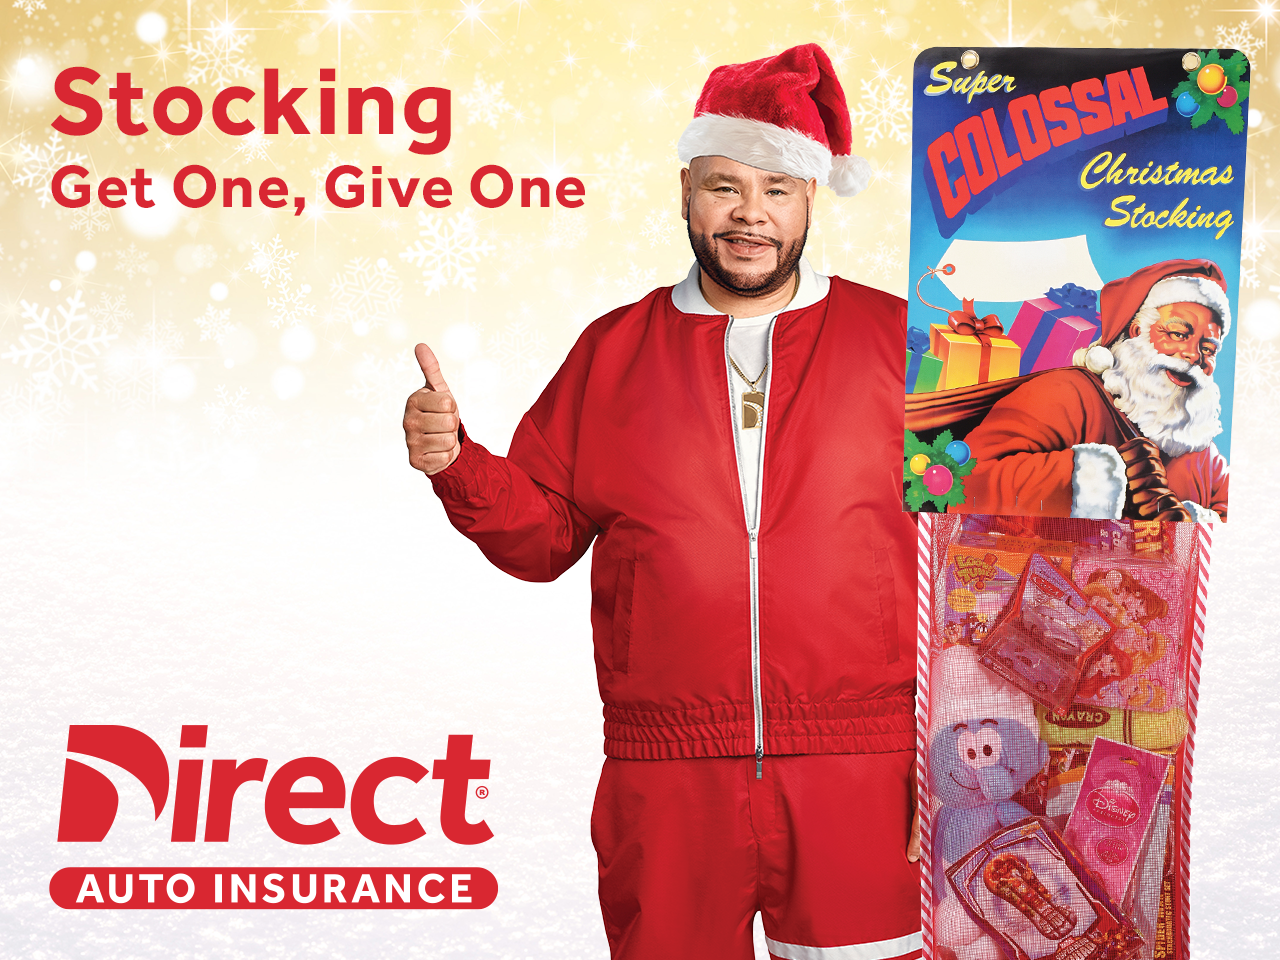 Direct Auto Insurance Celebrates the Season of Giving with Charitable